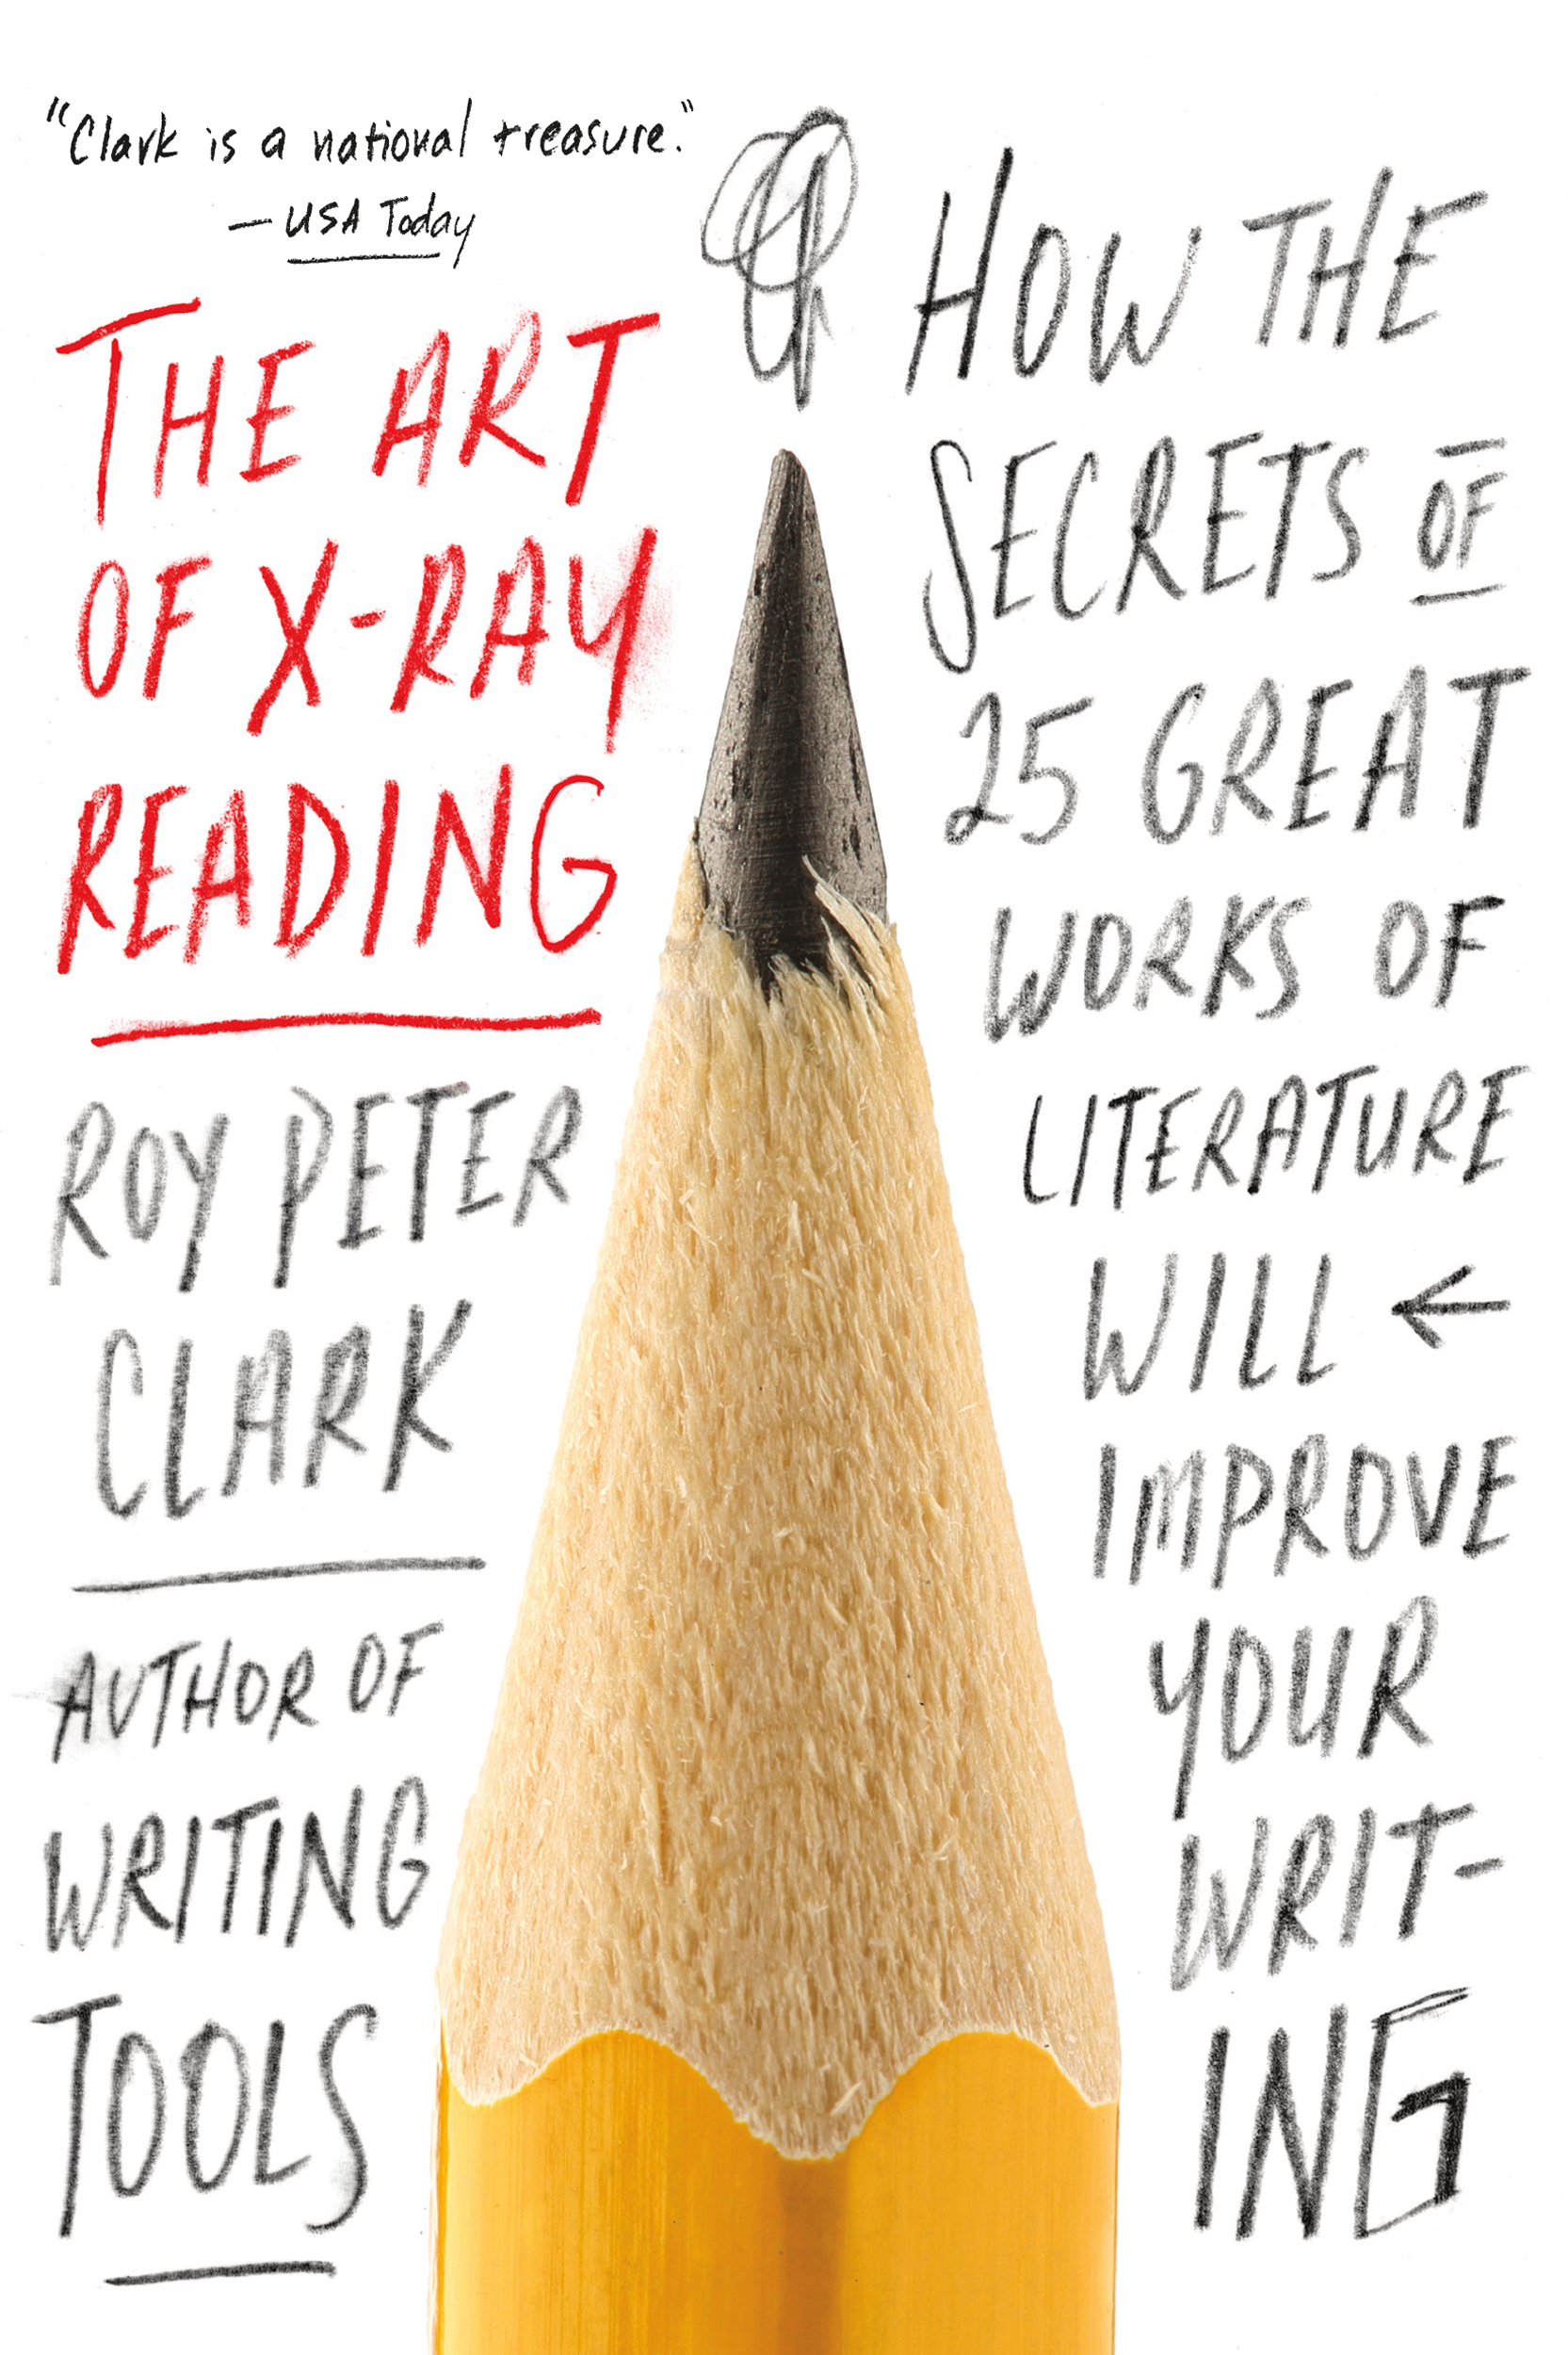 The Art of X-Ray Reading How the Secrets of 25 Great Works of Literature Will Improve Your Writing